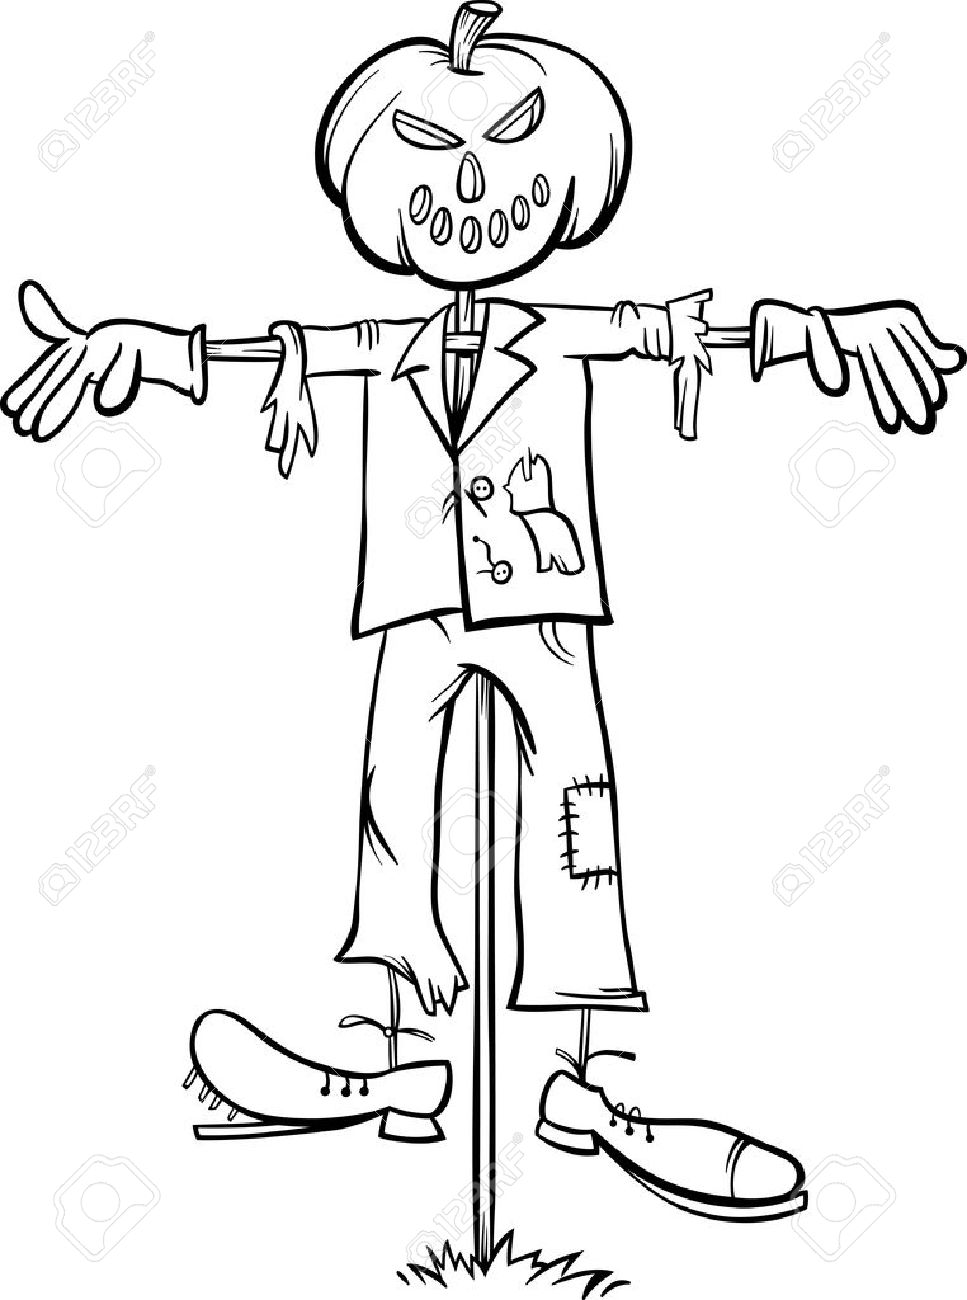 black and white cartoon illustration of scary halloween scarecrow